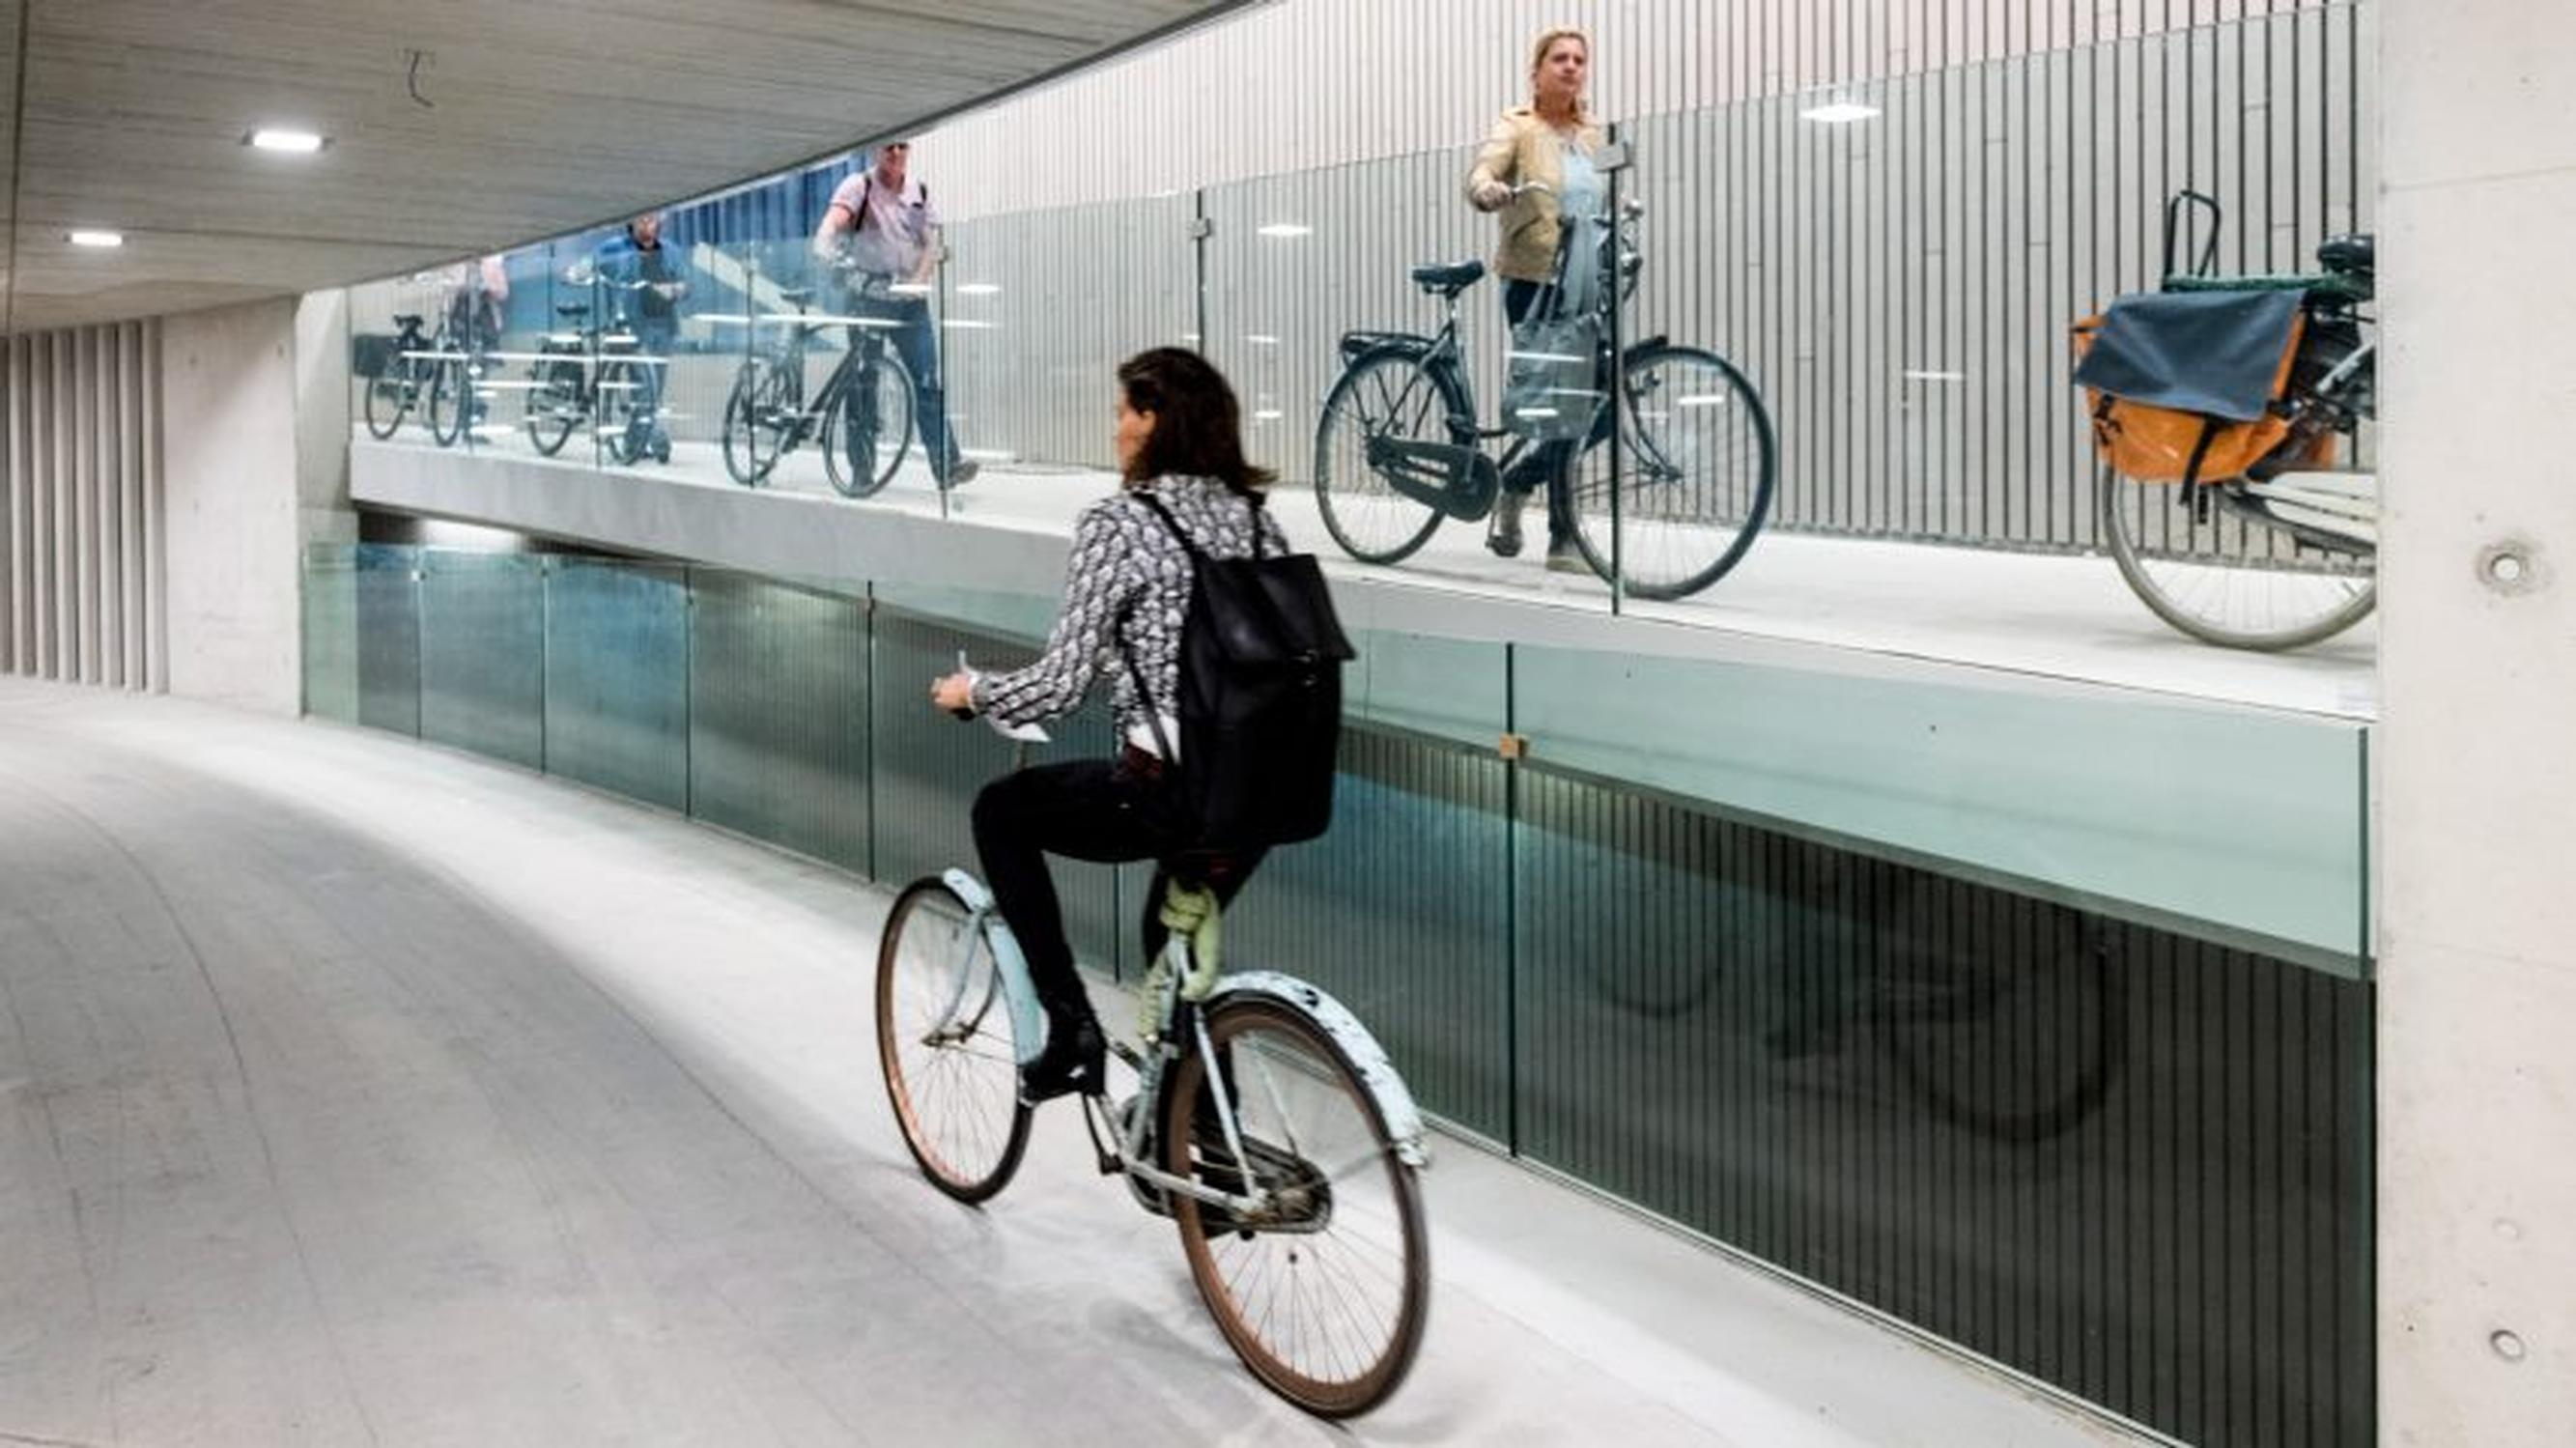 The €30m facility at Utrecht central railway station in the Netherlands has space for over 12,500 bicycles